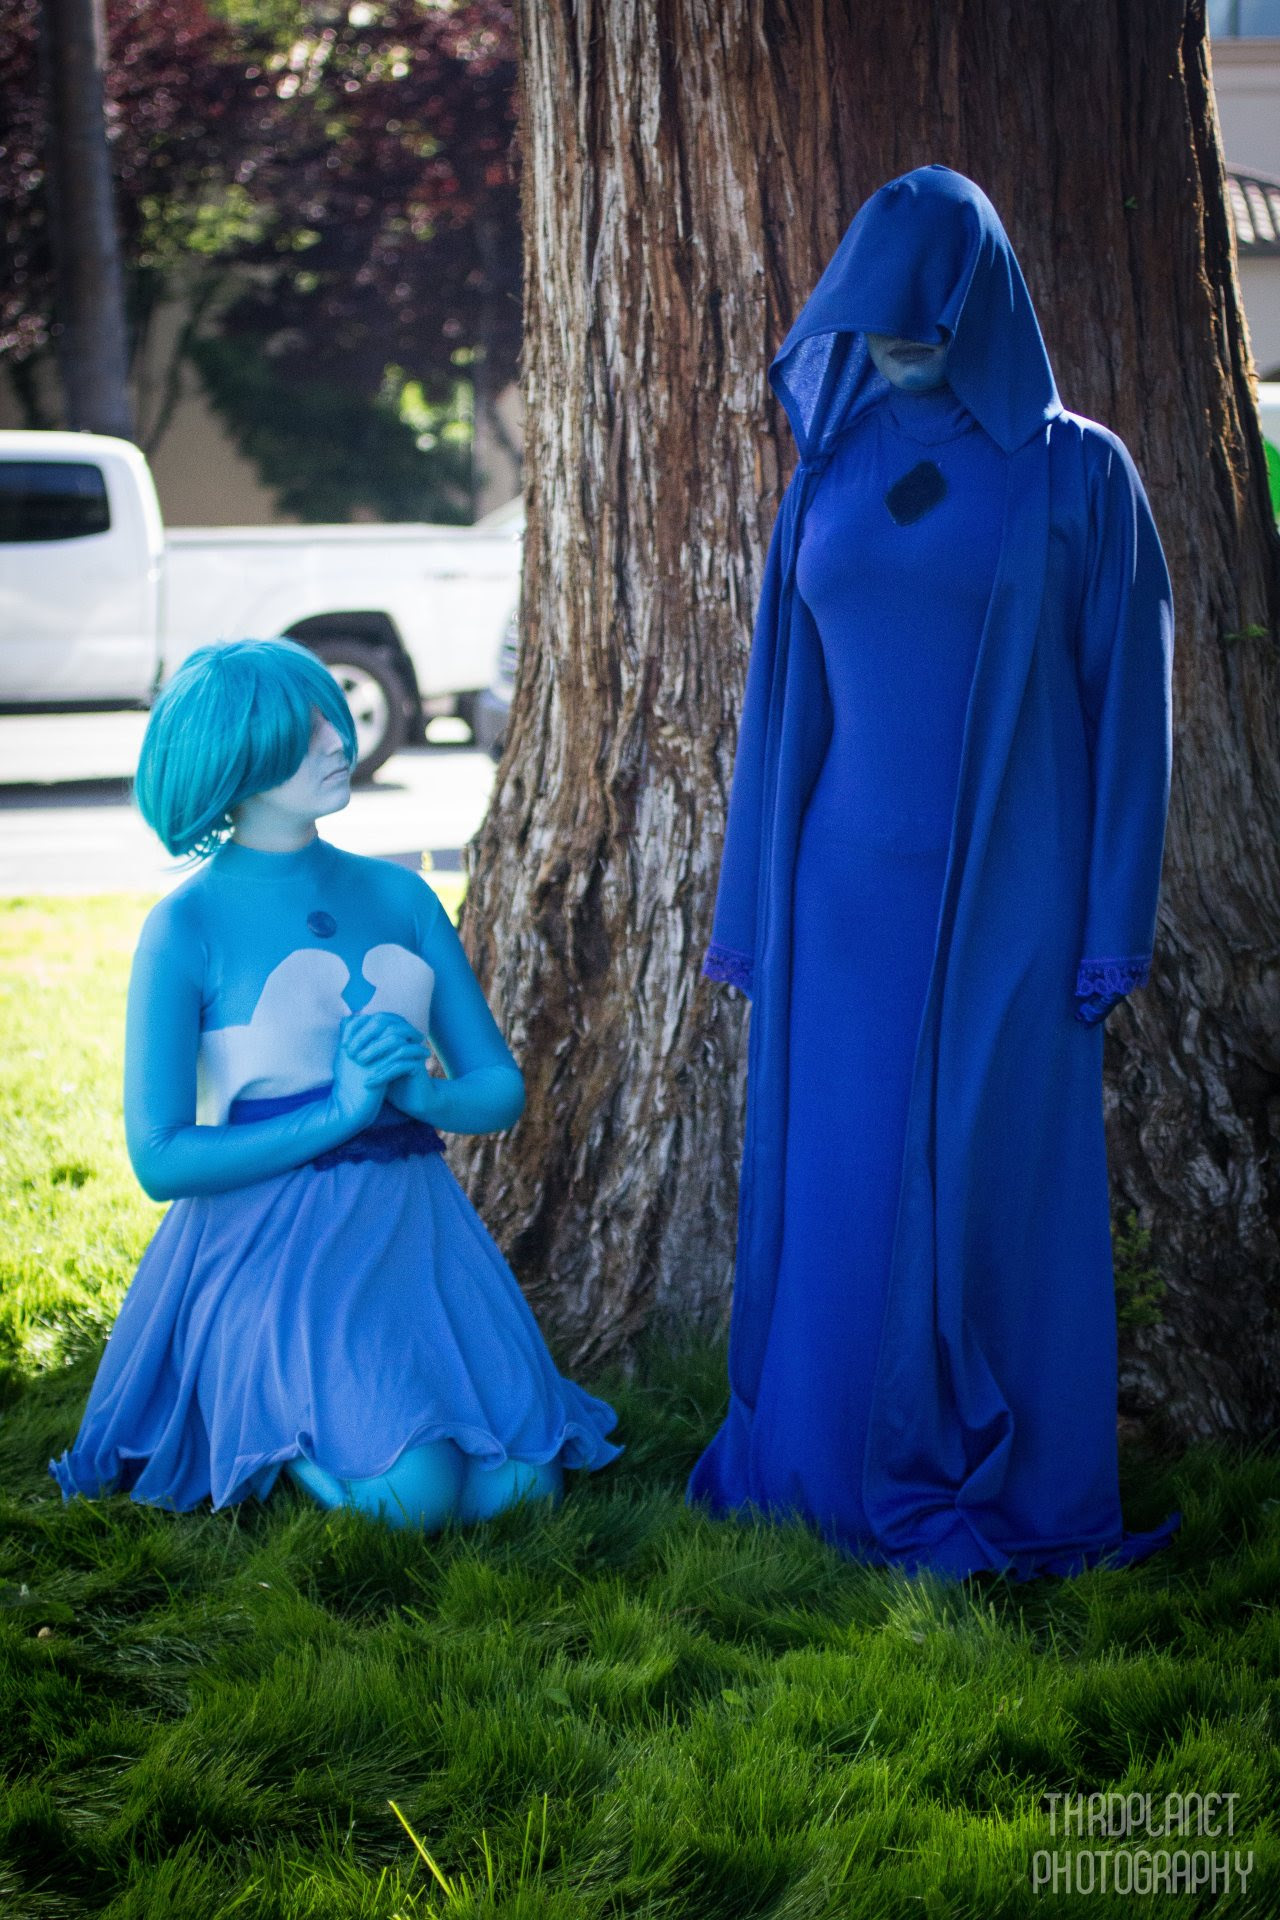 """Blue Diamond and her Pearl "" Blue Diamond: @her-majestys-handmaid Blue Pearl: @fandomsandscienceyay Photographer: @thrdplanet"